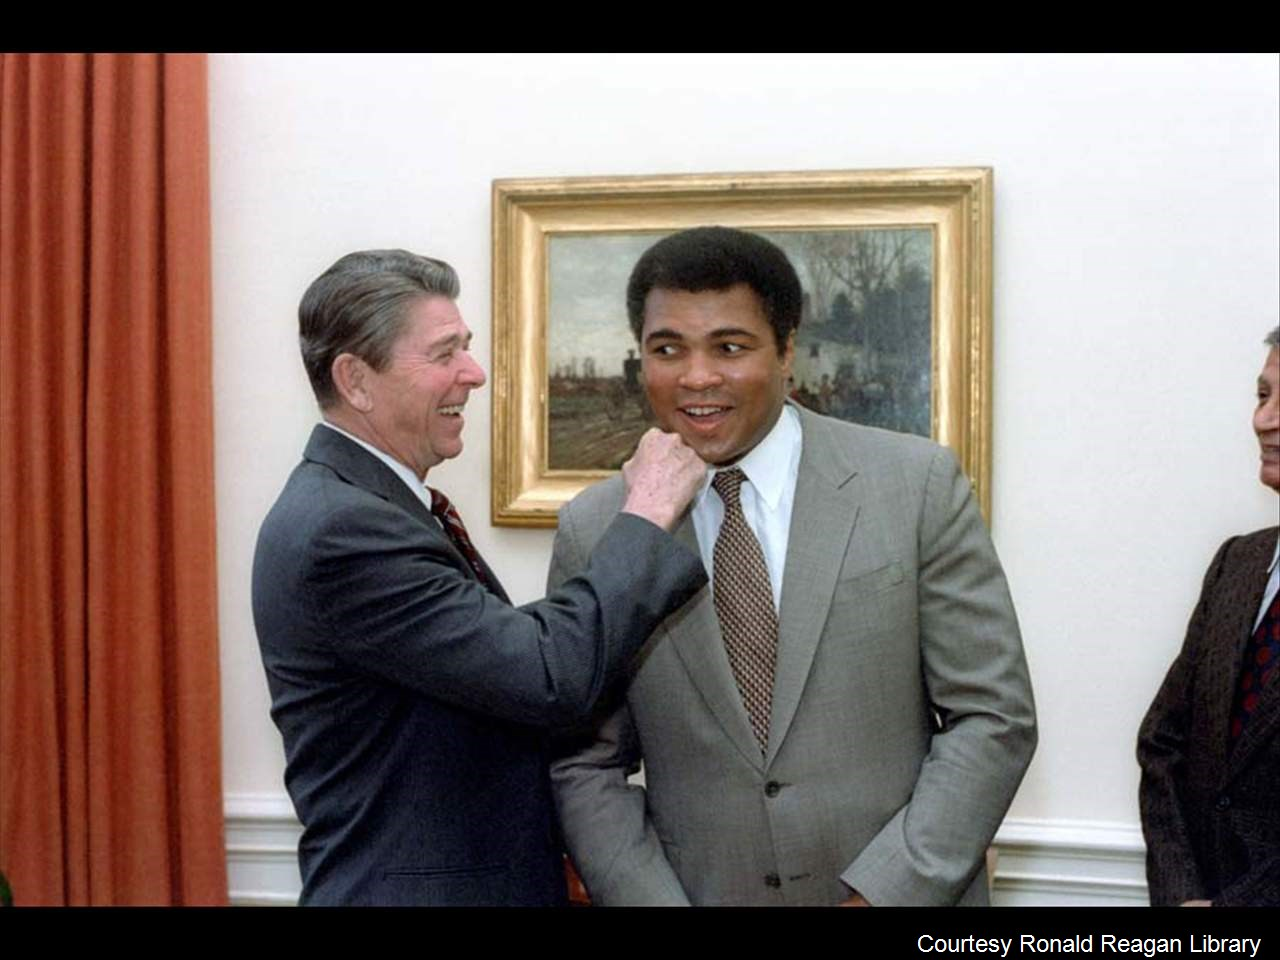 "Muhammad Ali was admitted to the hospital with a respiratory issue according to his rep who confirmed Thursday, June 2, 2016. (President Reagan ""punching"" Muhammad Ali in the oval office, Photo Date: 1/24/83 - Courtesy Ronald Reagan Library)"